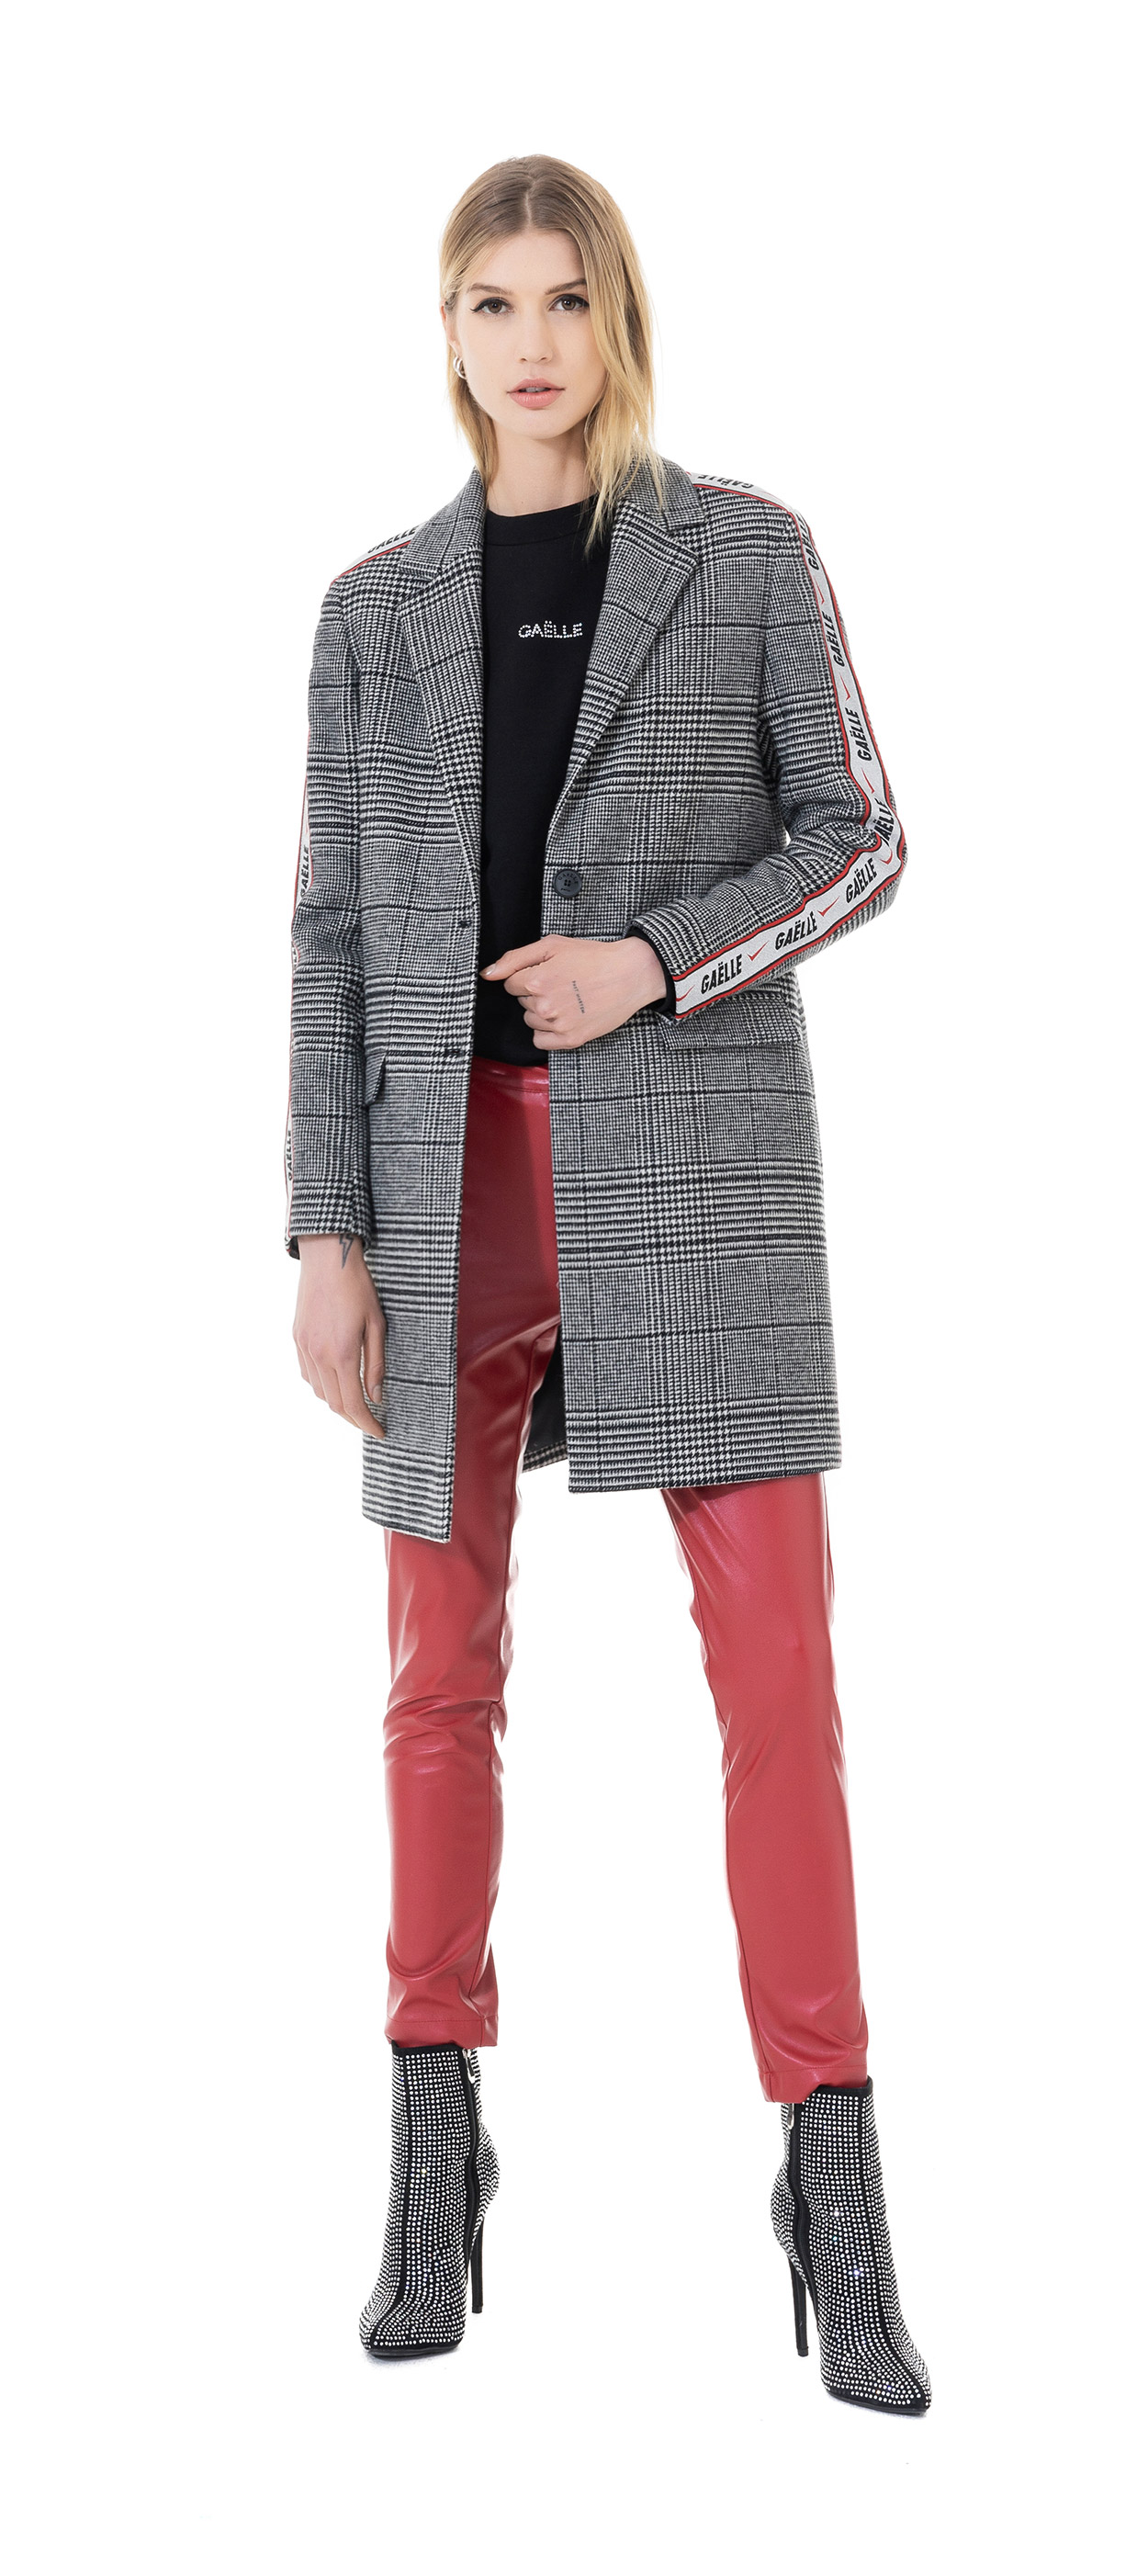 CAPPOTTO - GBD4670 - GAELLE PARIS